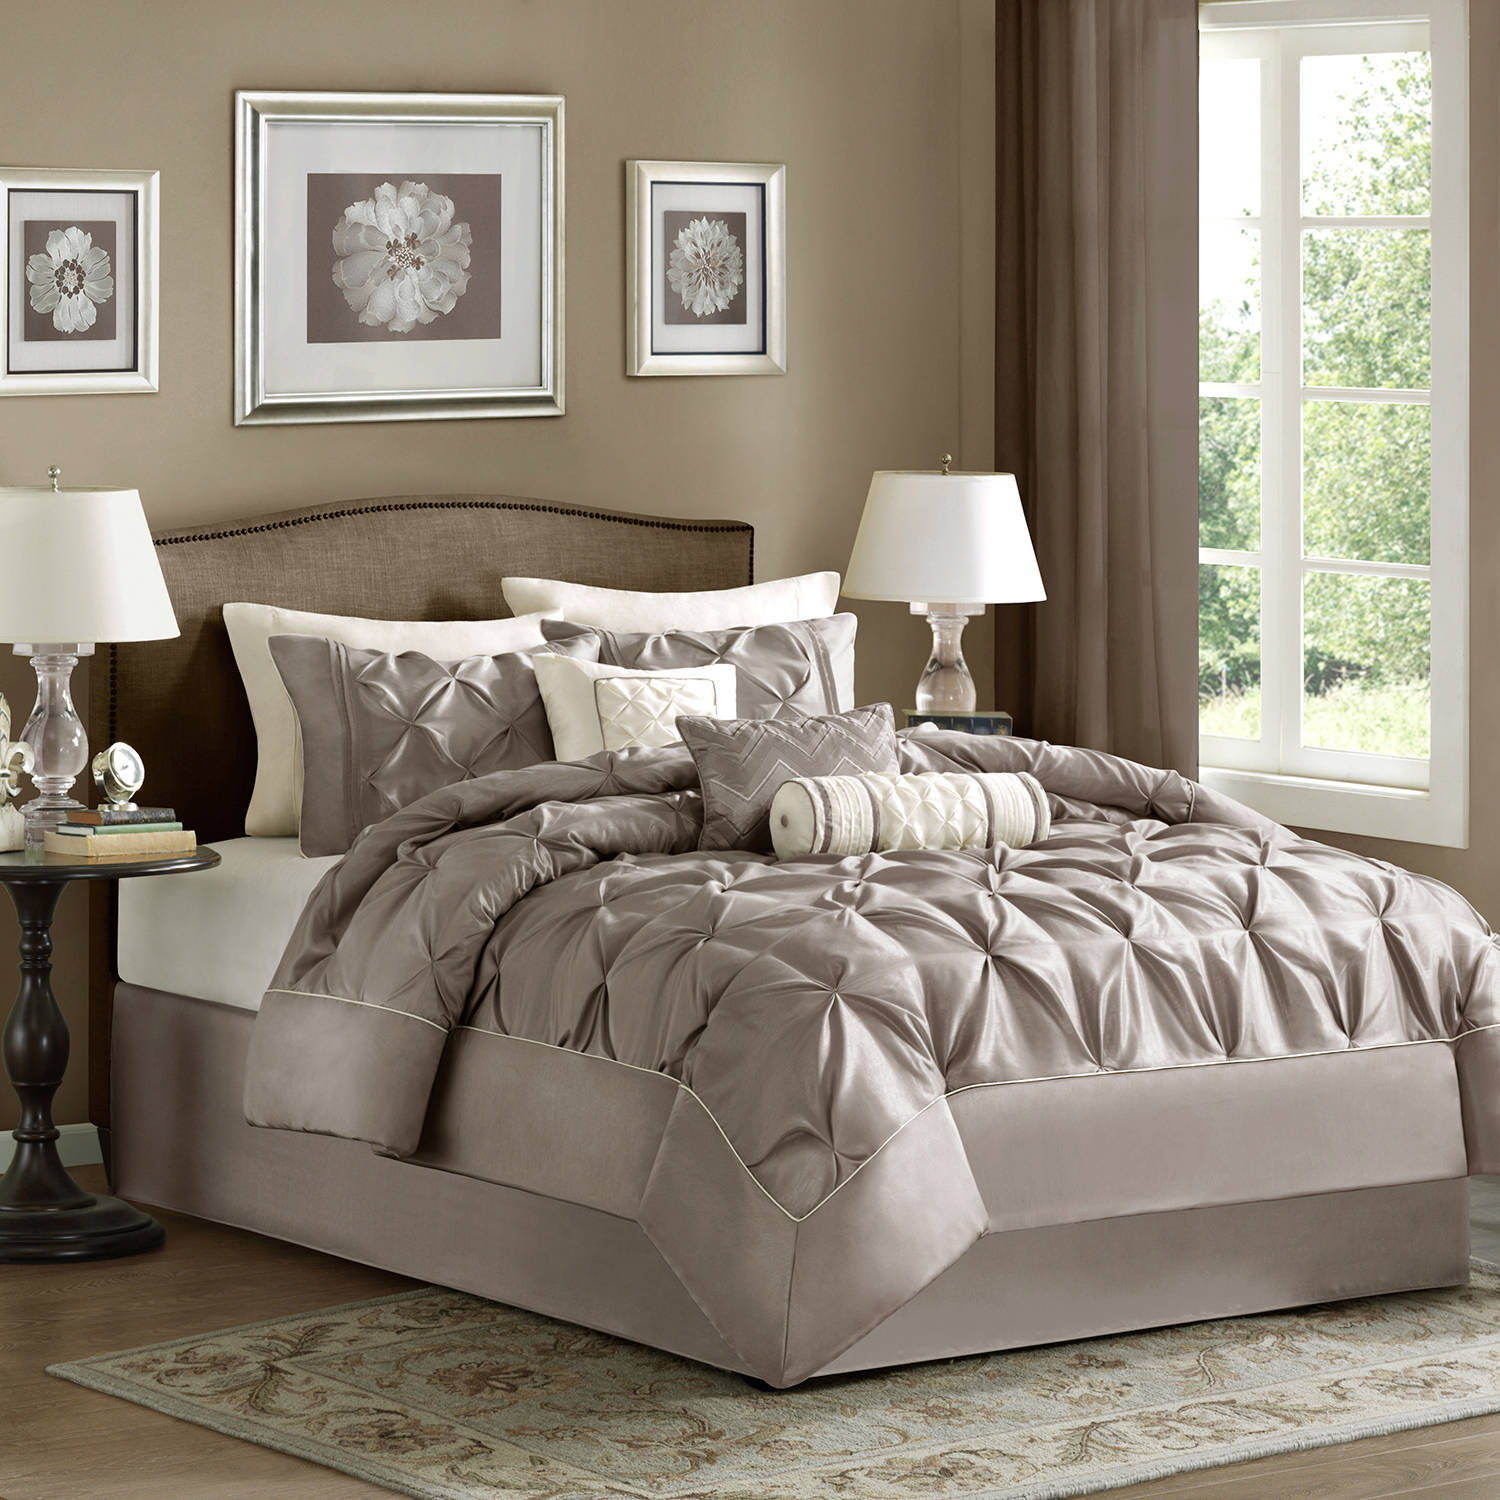 better homes and gardens 4pc solid damask reversible quilt bedding set walmartcom